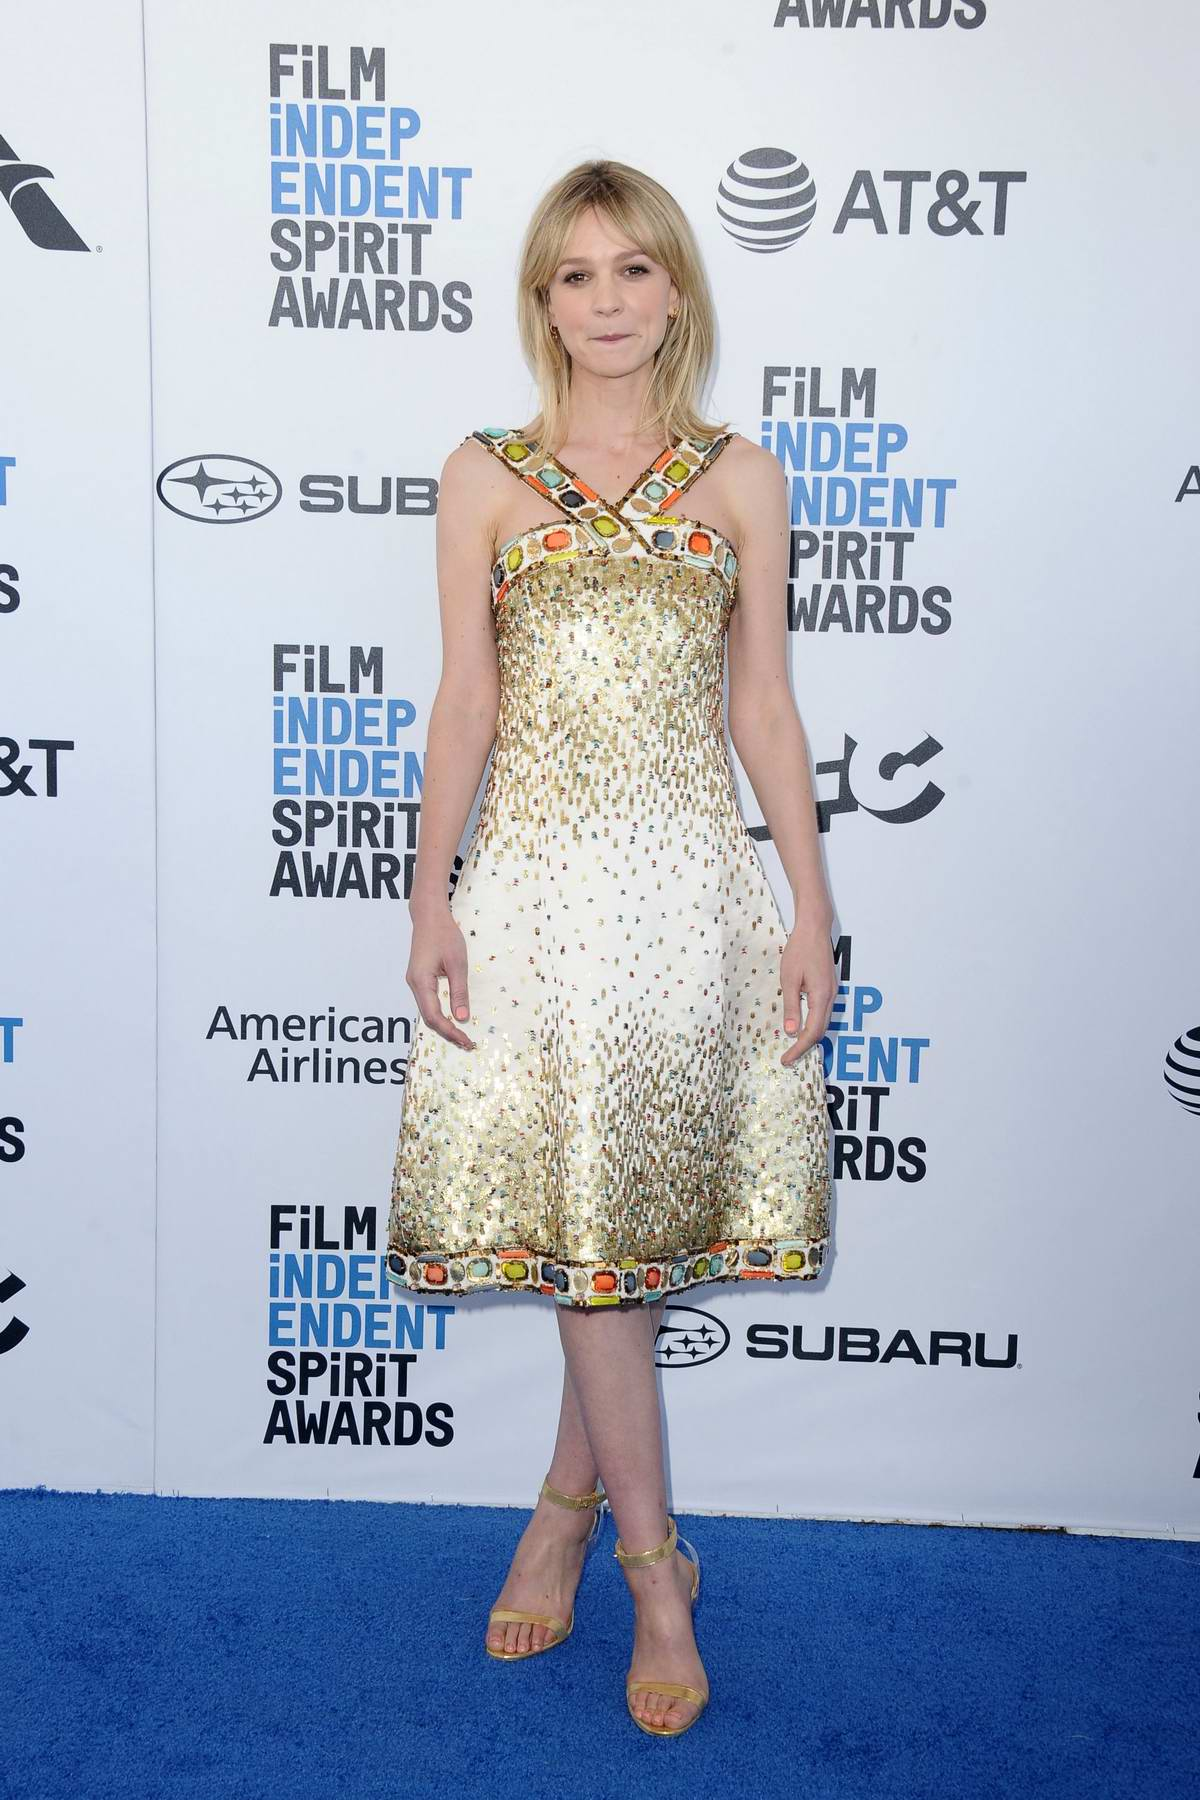 Carey Mulligan attends the 34th Film Independent Spirit Awards in Santa Monica, California